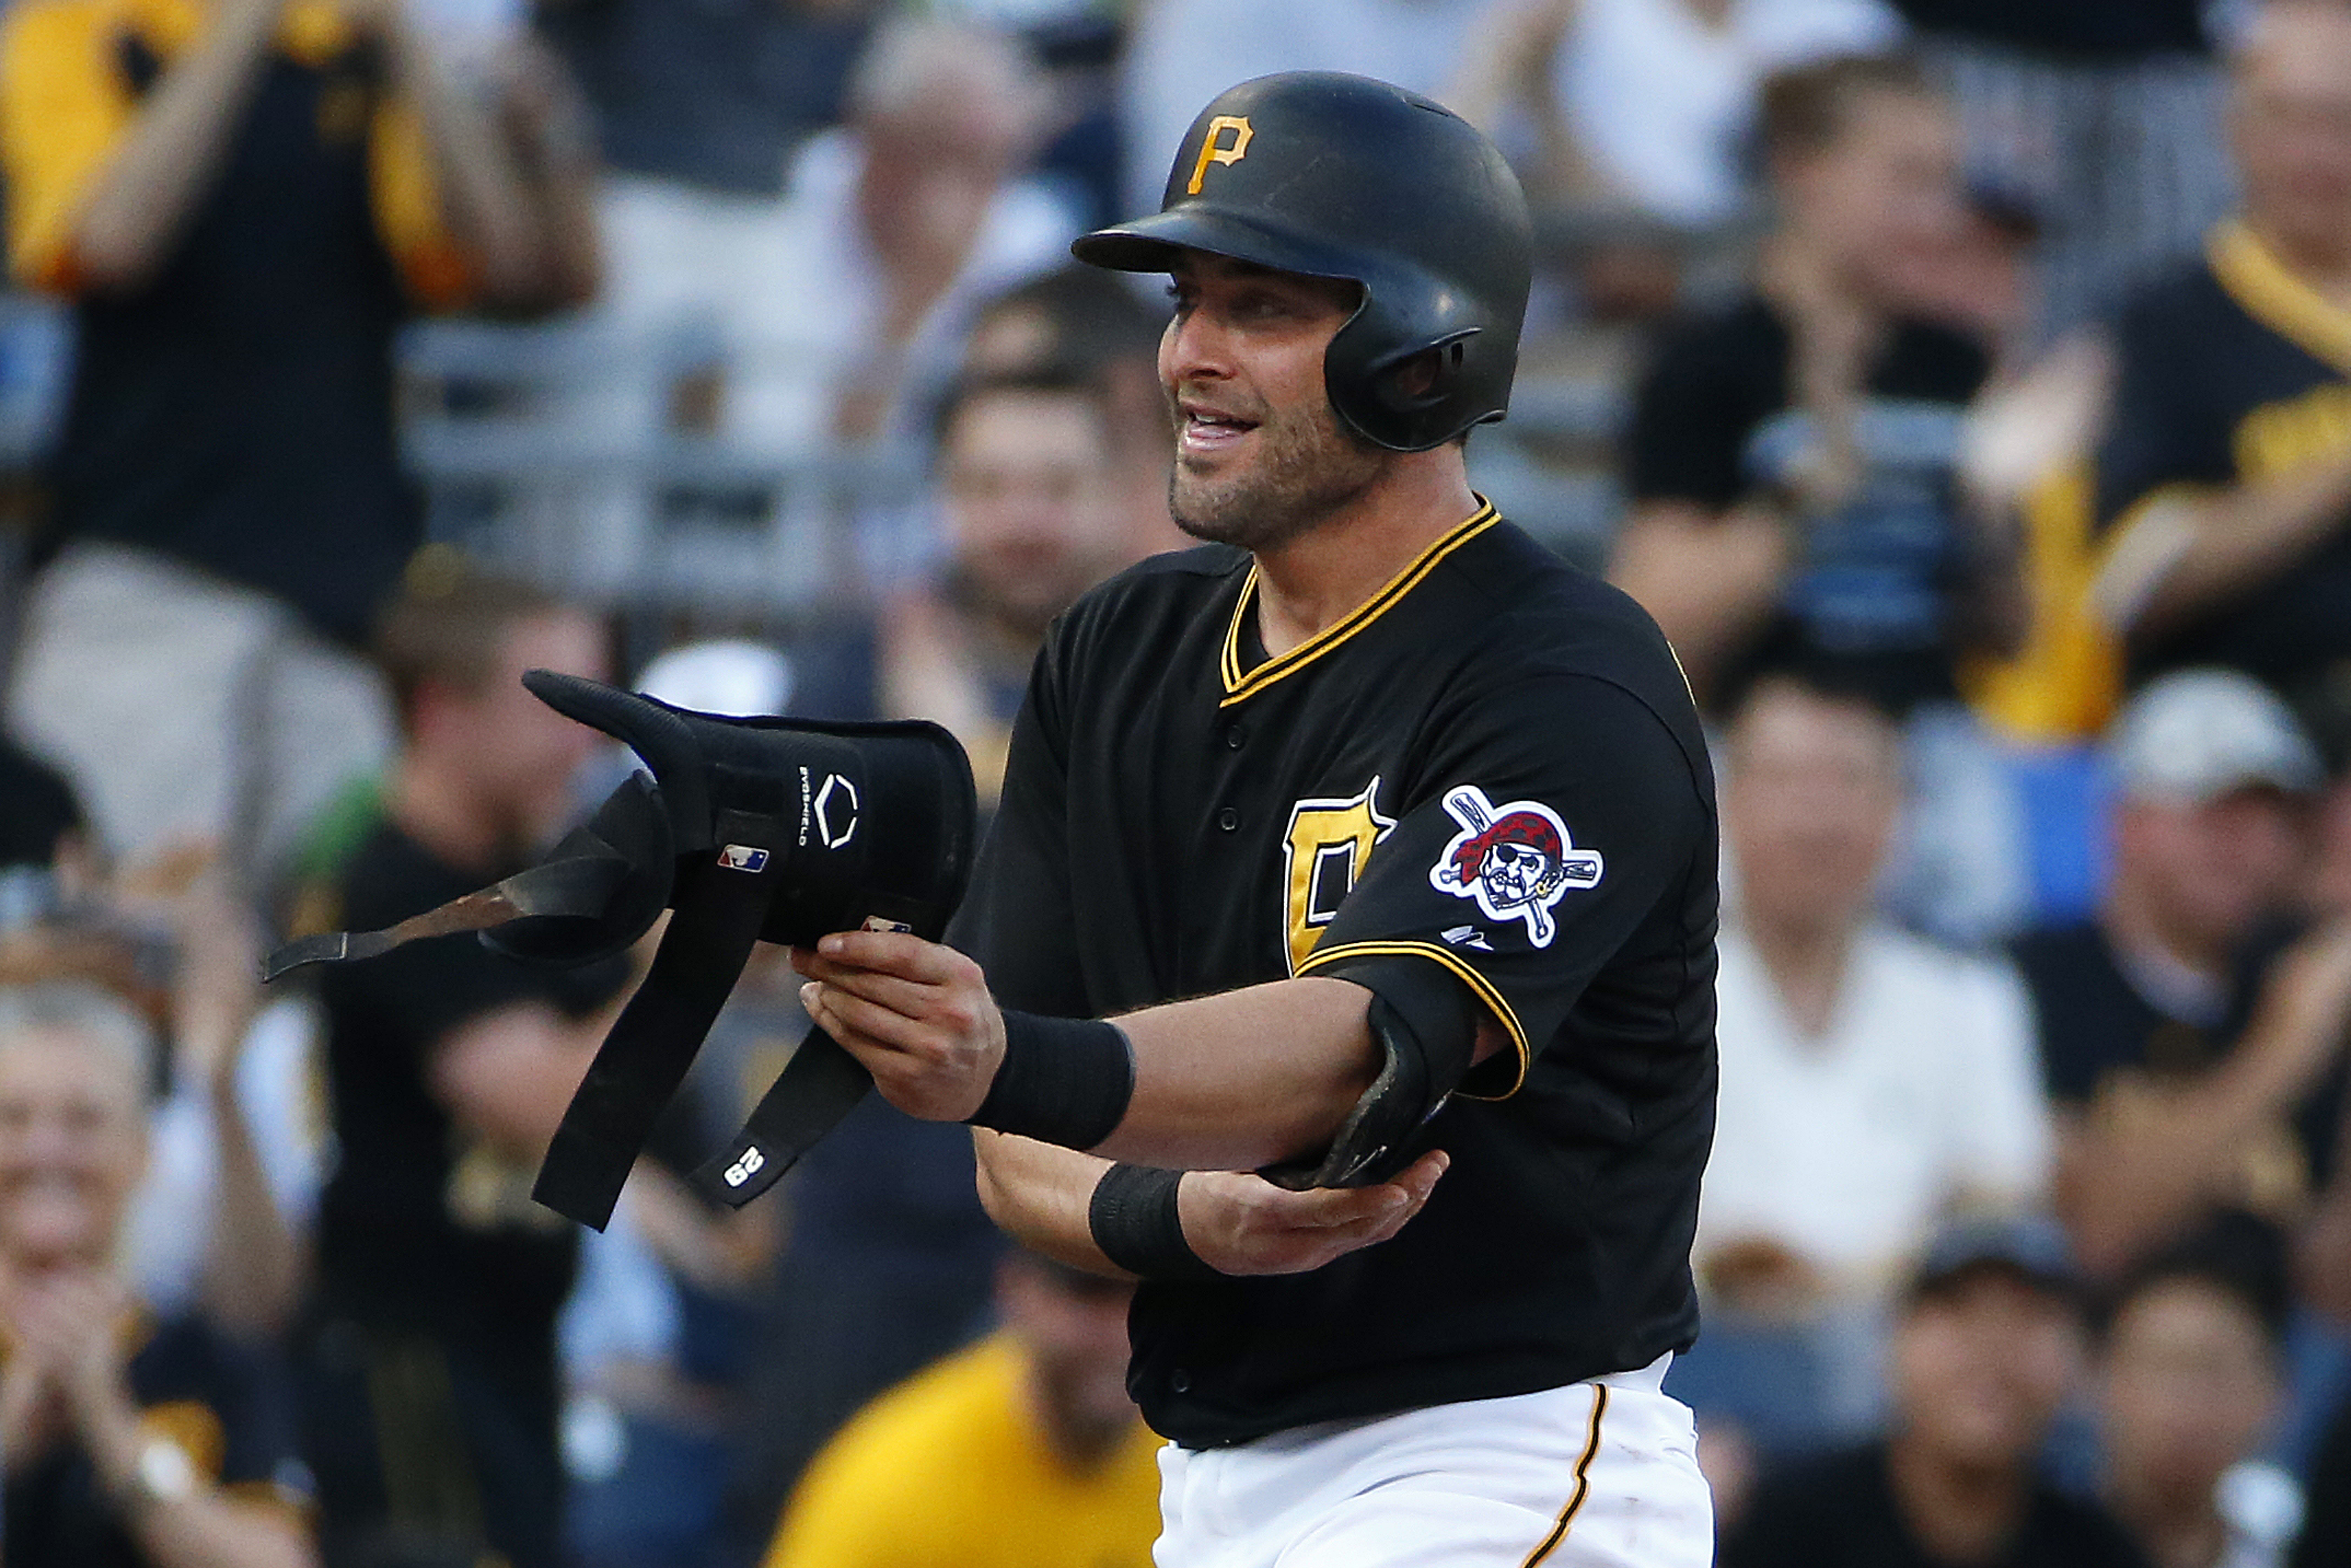 Pittsburgh Pirates' Francisco Cervelli stands on third base after driving in two runs with a triple off Chicago White Sox starting pitcher Carlos Rodon during the first inning of a baseball game in Pittsburgh, Monday, June 15, 2015. (AP Photo/Gene J. Pusk